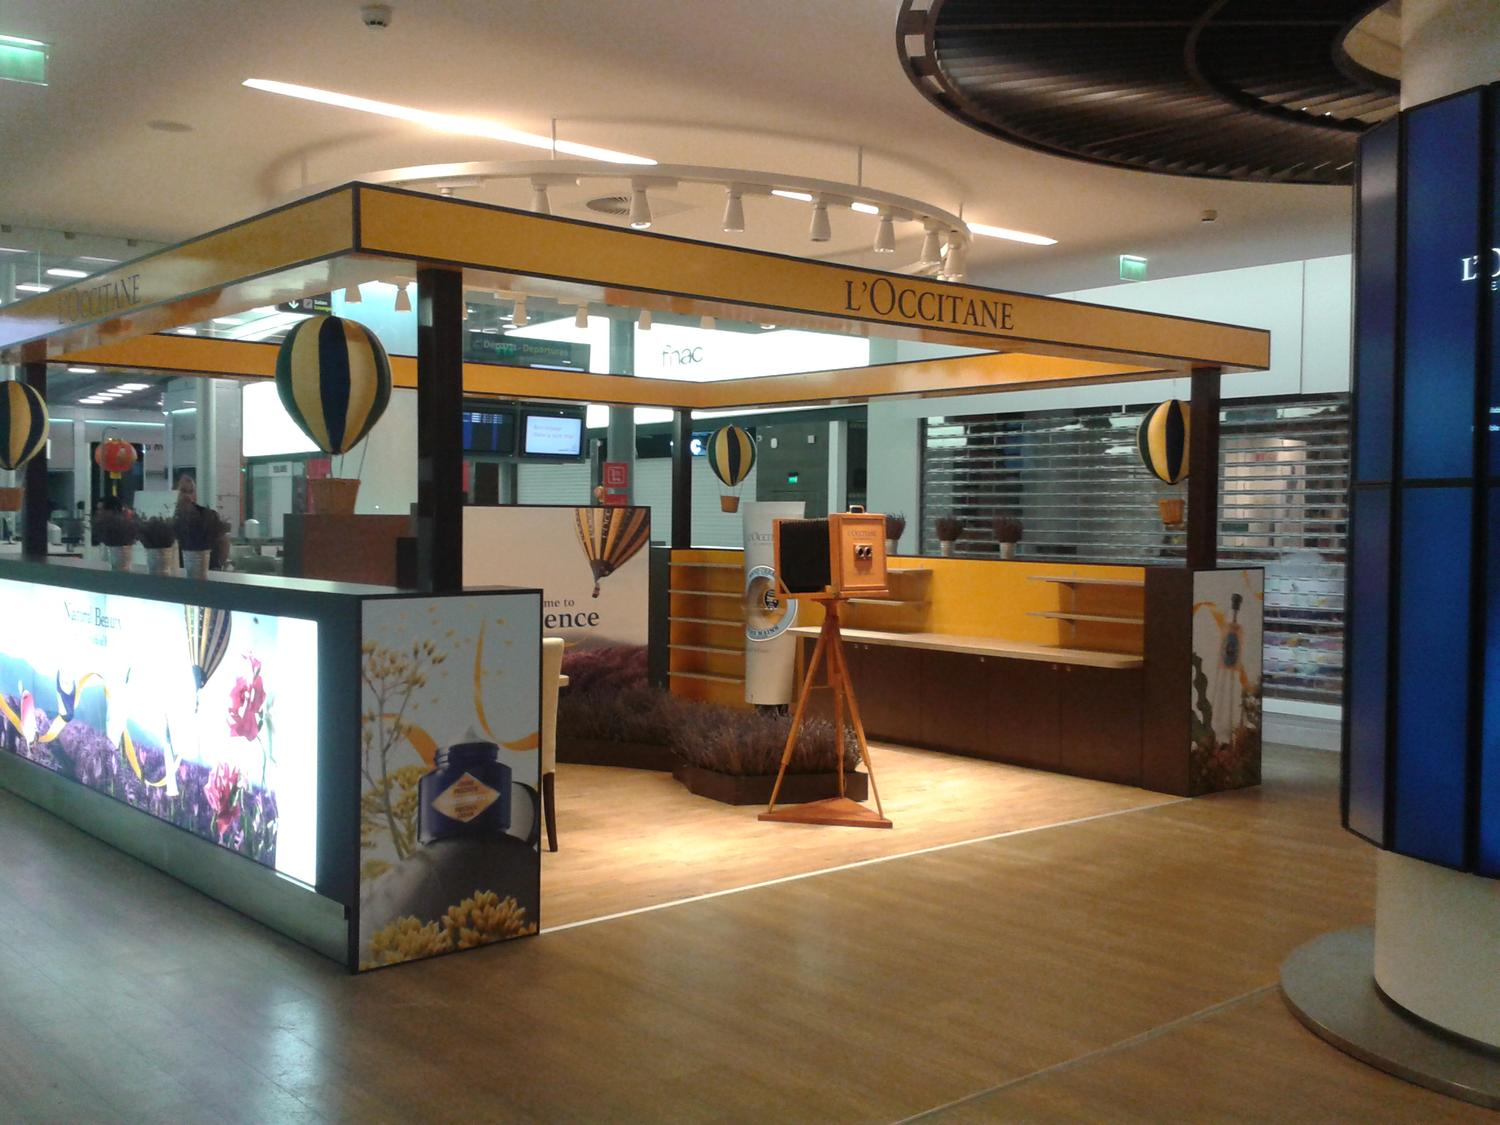 pop up store l'occitane aéroport de roissy charles de gaulle